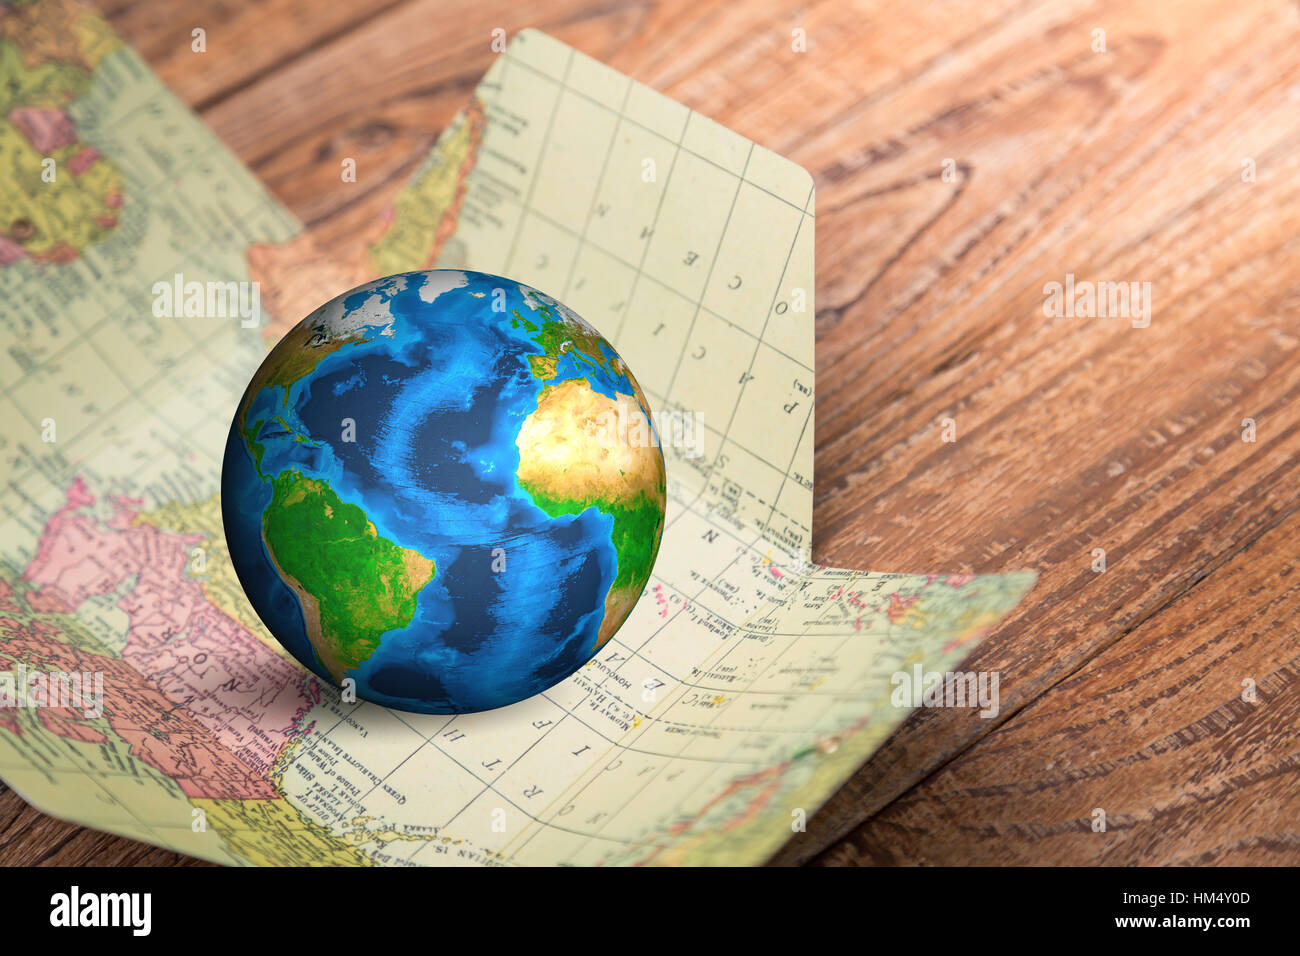 Ball world old map in stock photos ball world old map in stock earth in map on wood background elements of this image furnished by nasa stock image gumiabroncs Image collections